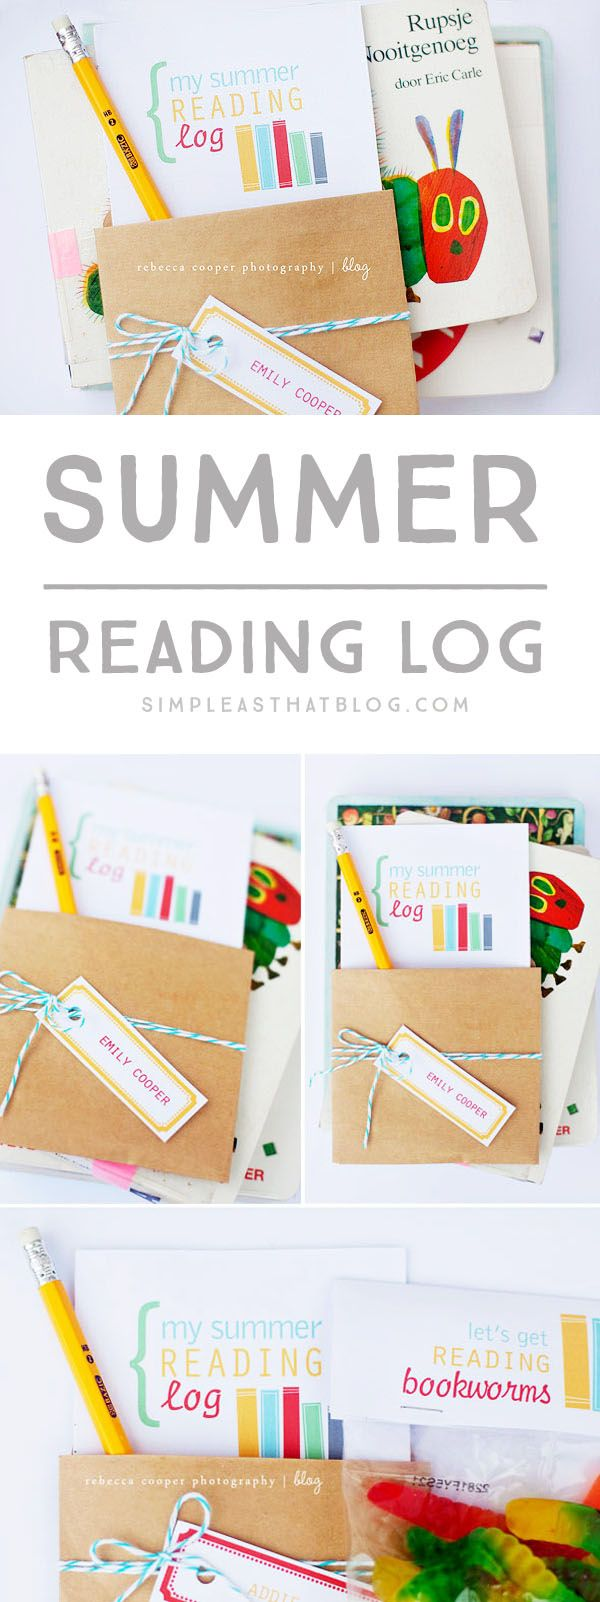 Free printables to encourage Summer reading and make it fun! Great idea for the kids this summer.